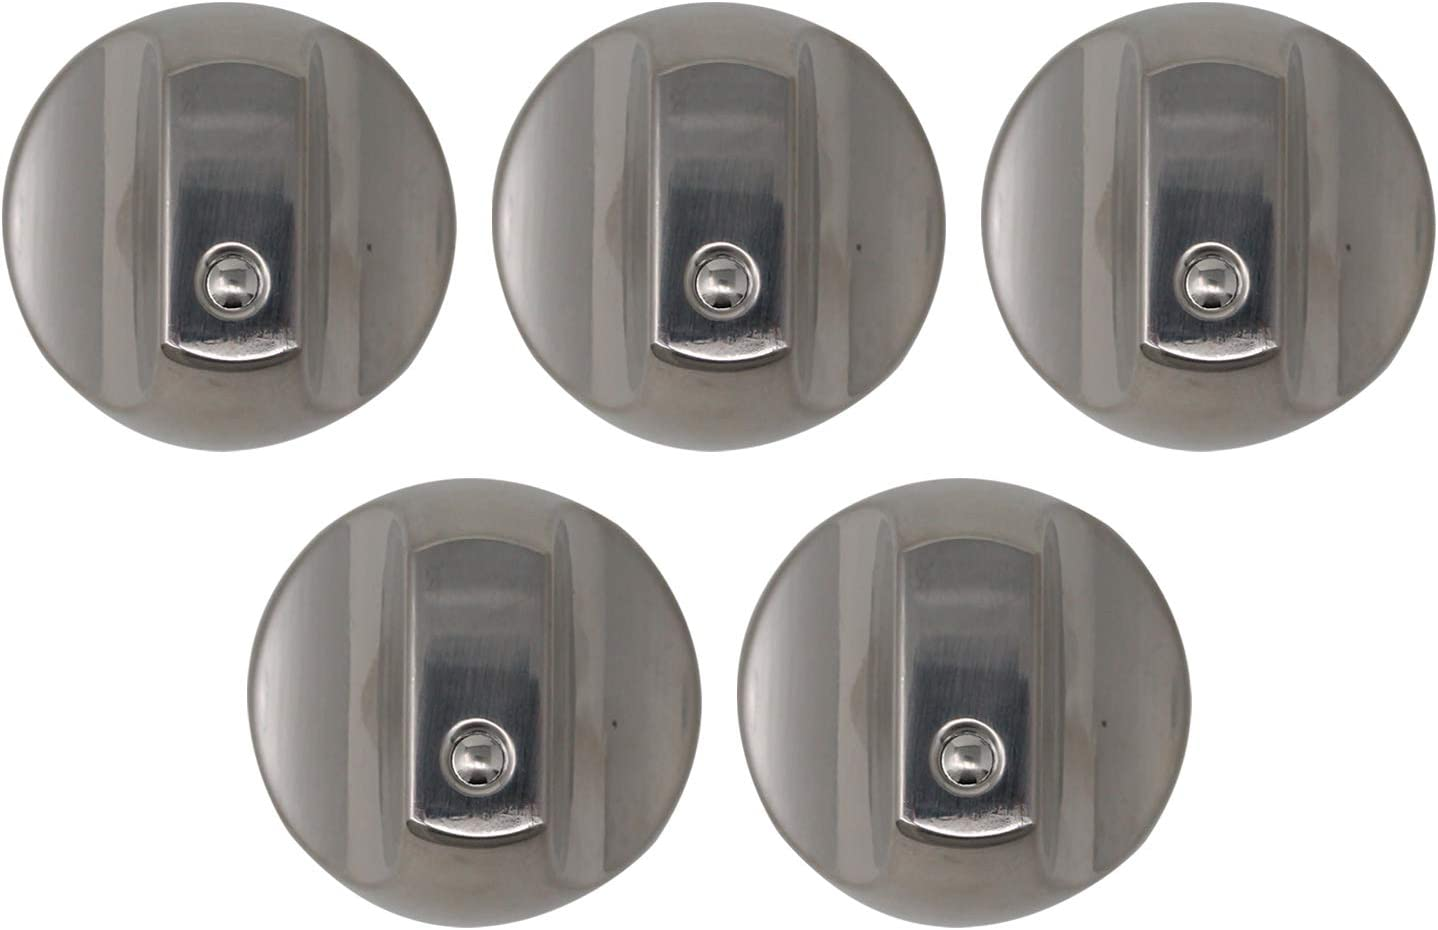 5-Pack WB03X32194 Range Knob Replacement for General Electric CG